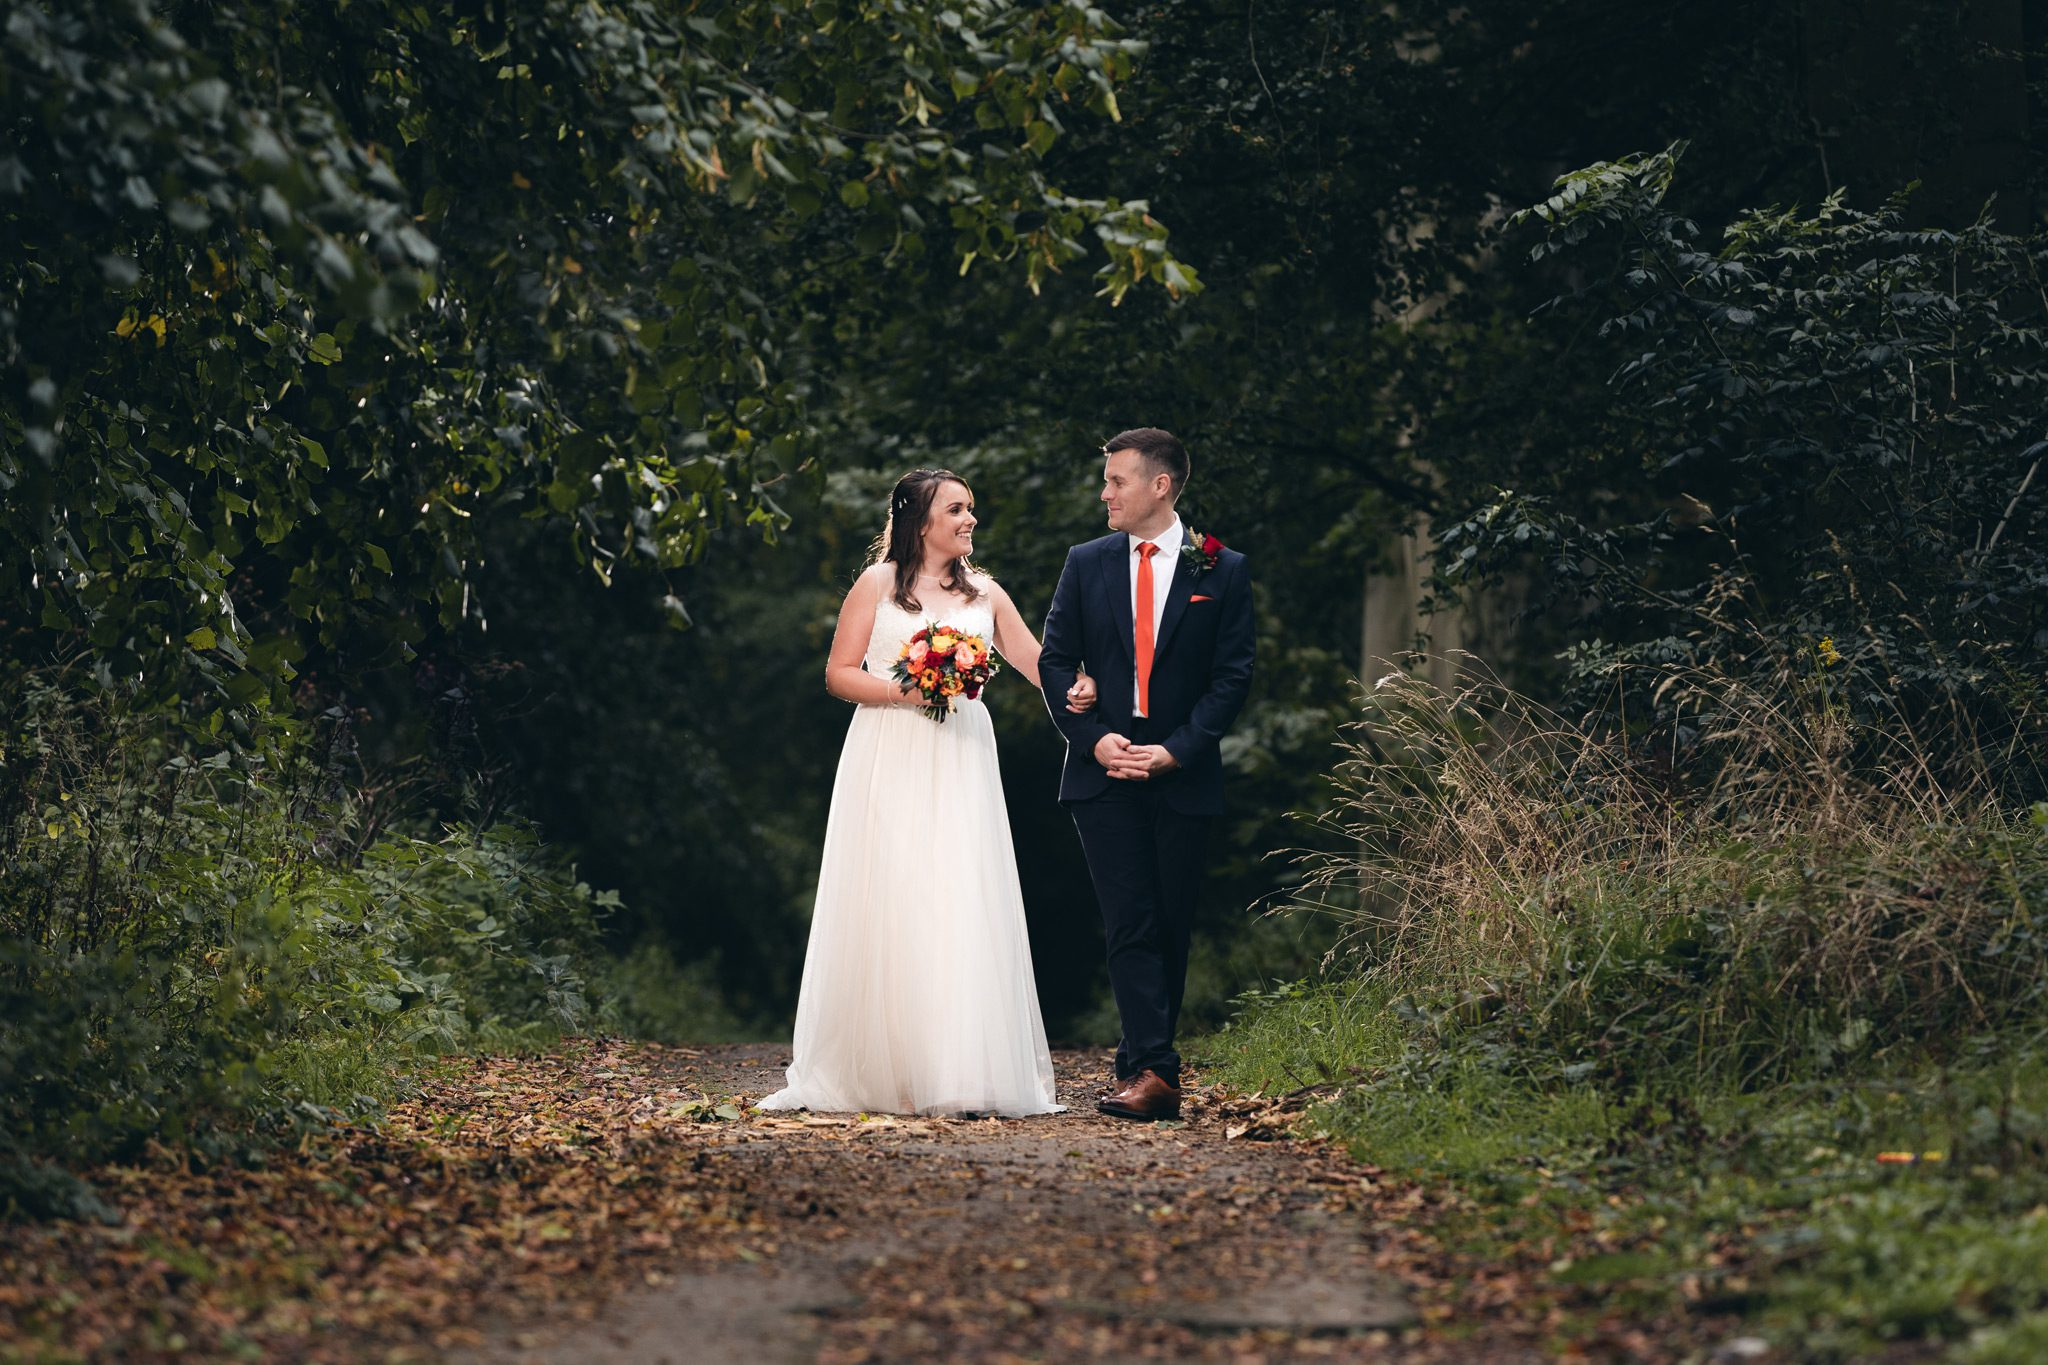 Bride and Groom walking through the woods